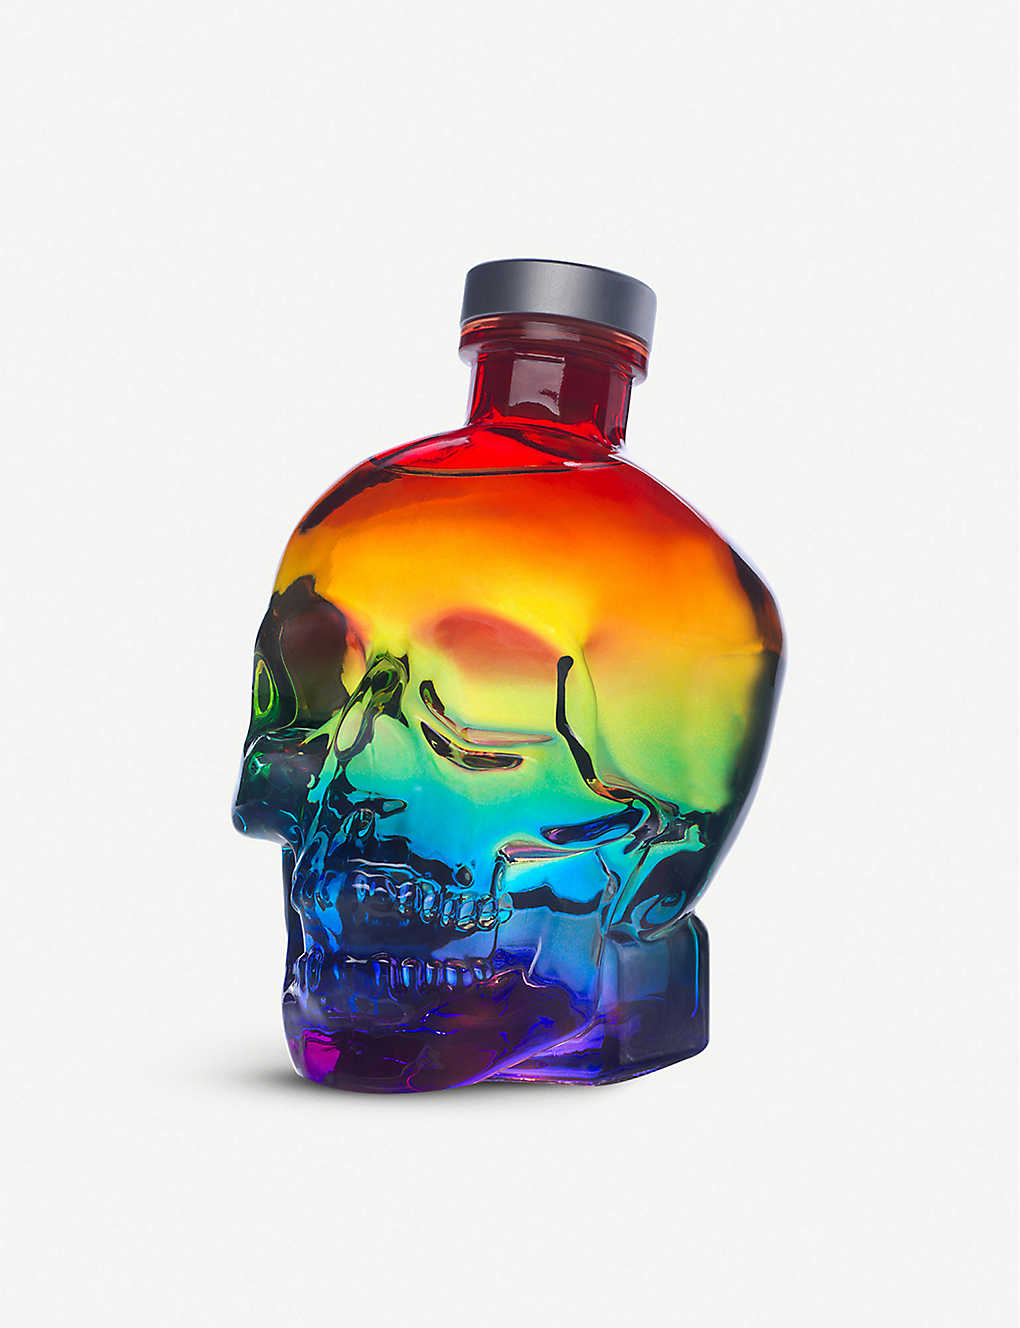 CRYSTAL HEAD VODKA: Pride limited edition vodka 700ml